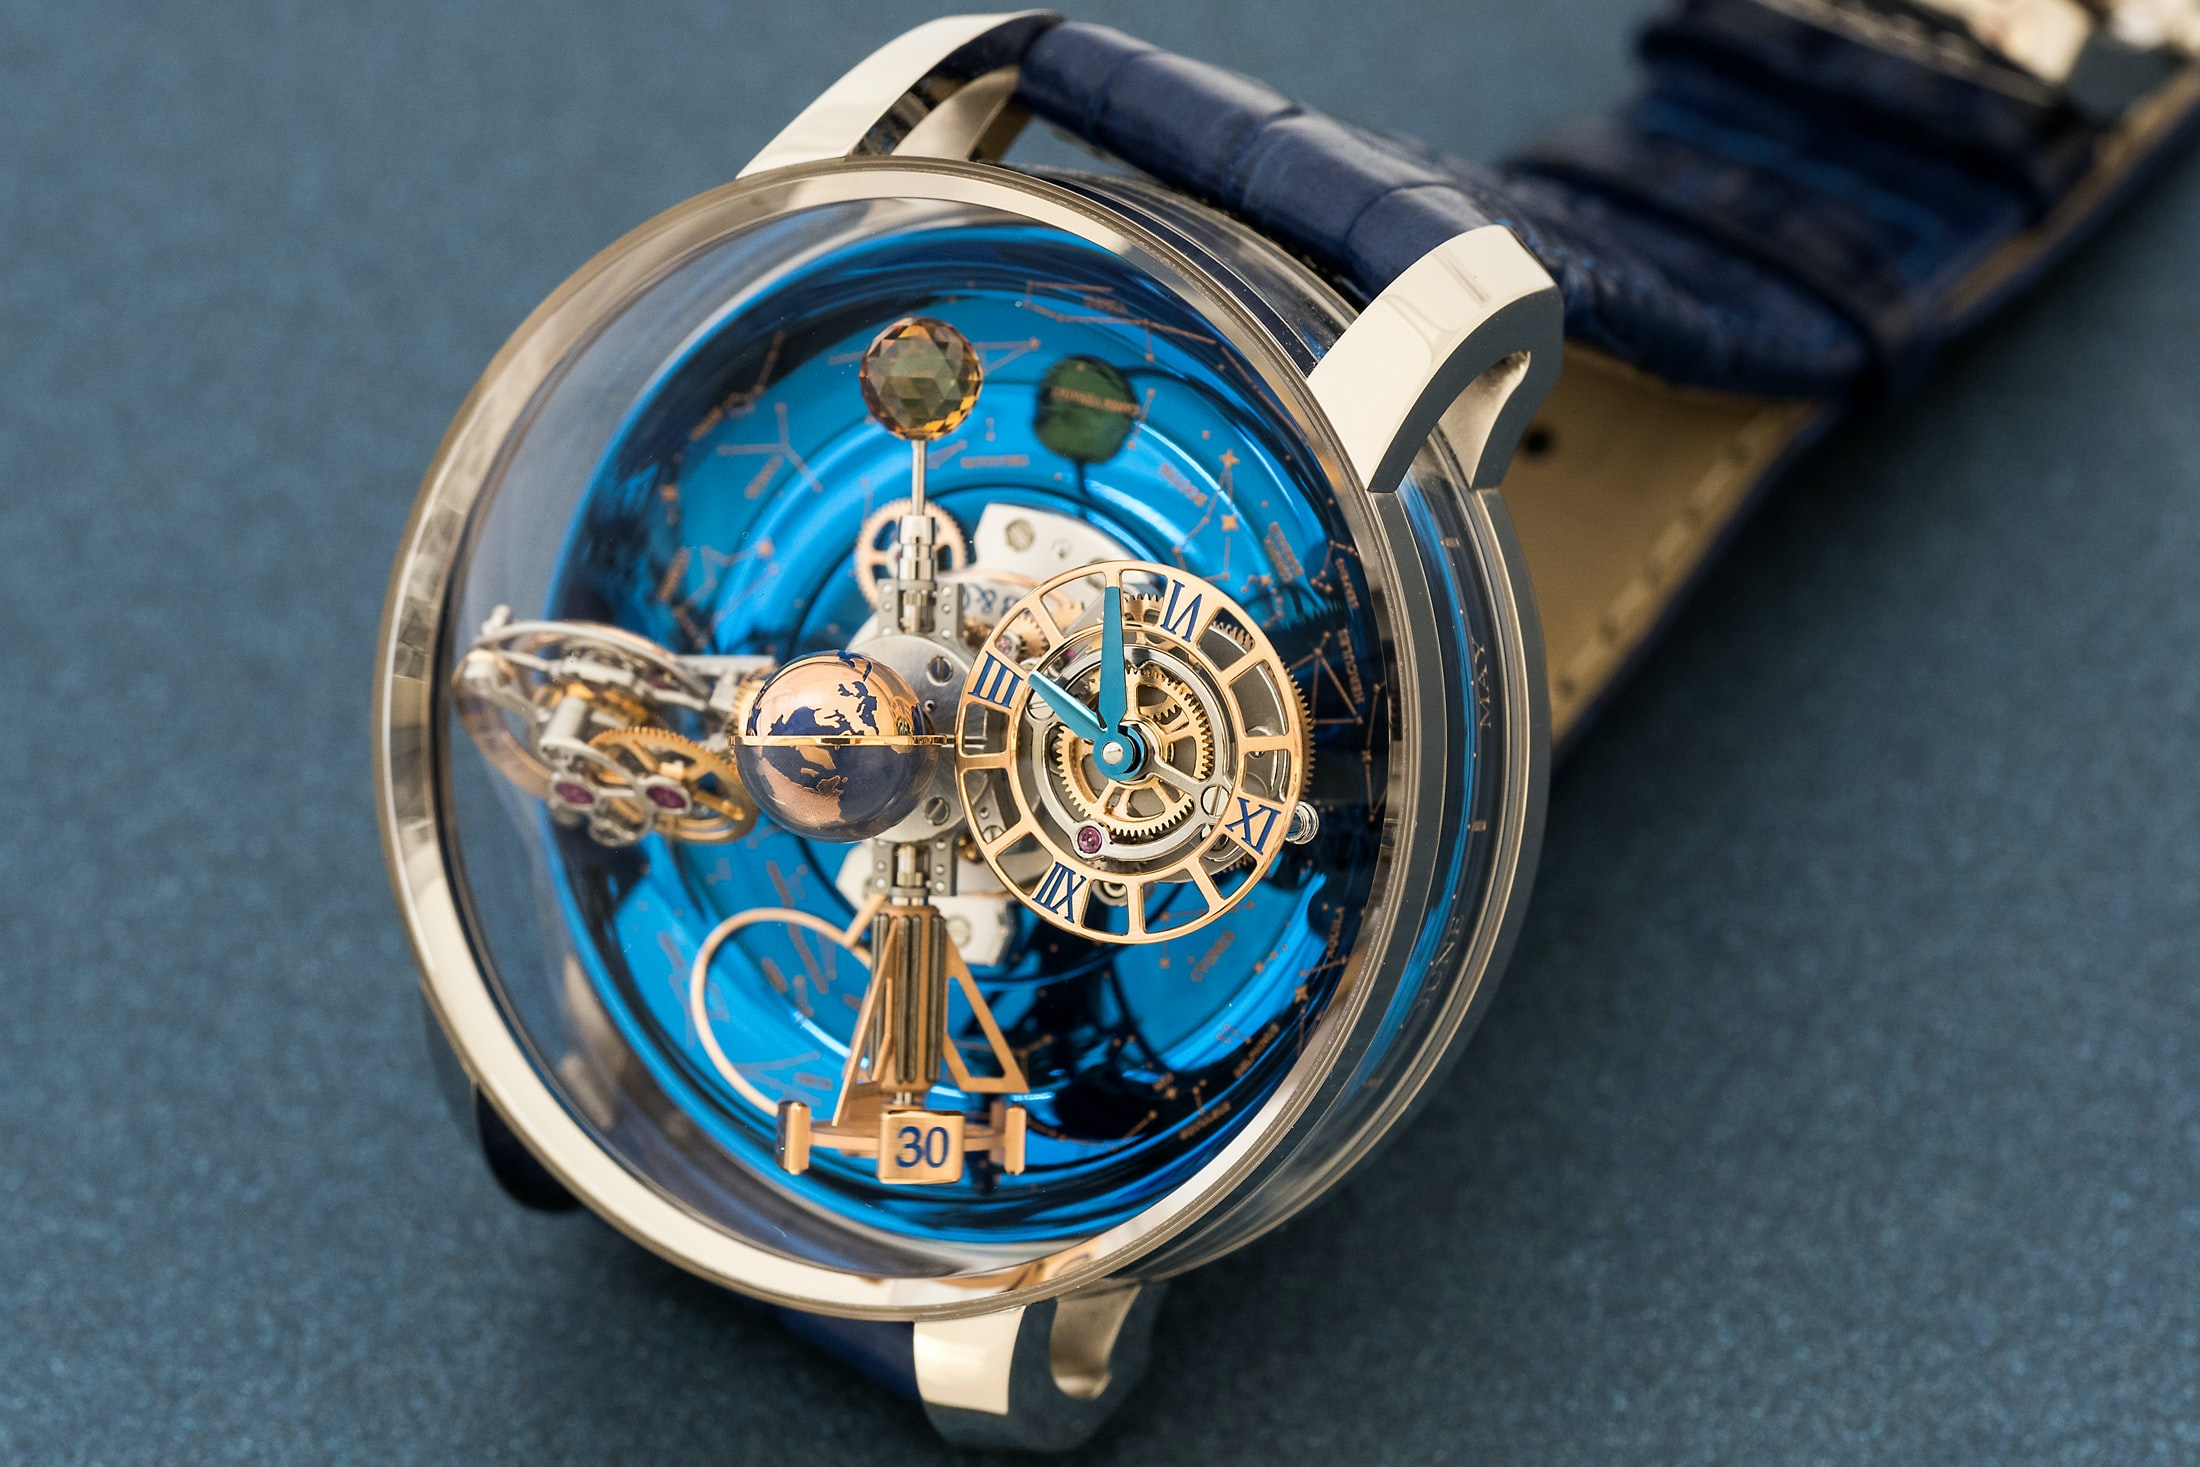 Hands-On: The Jacob & Co. Astronomia Sky Hands-On: The Jacob & Co. Astronomia Sky jacob 1